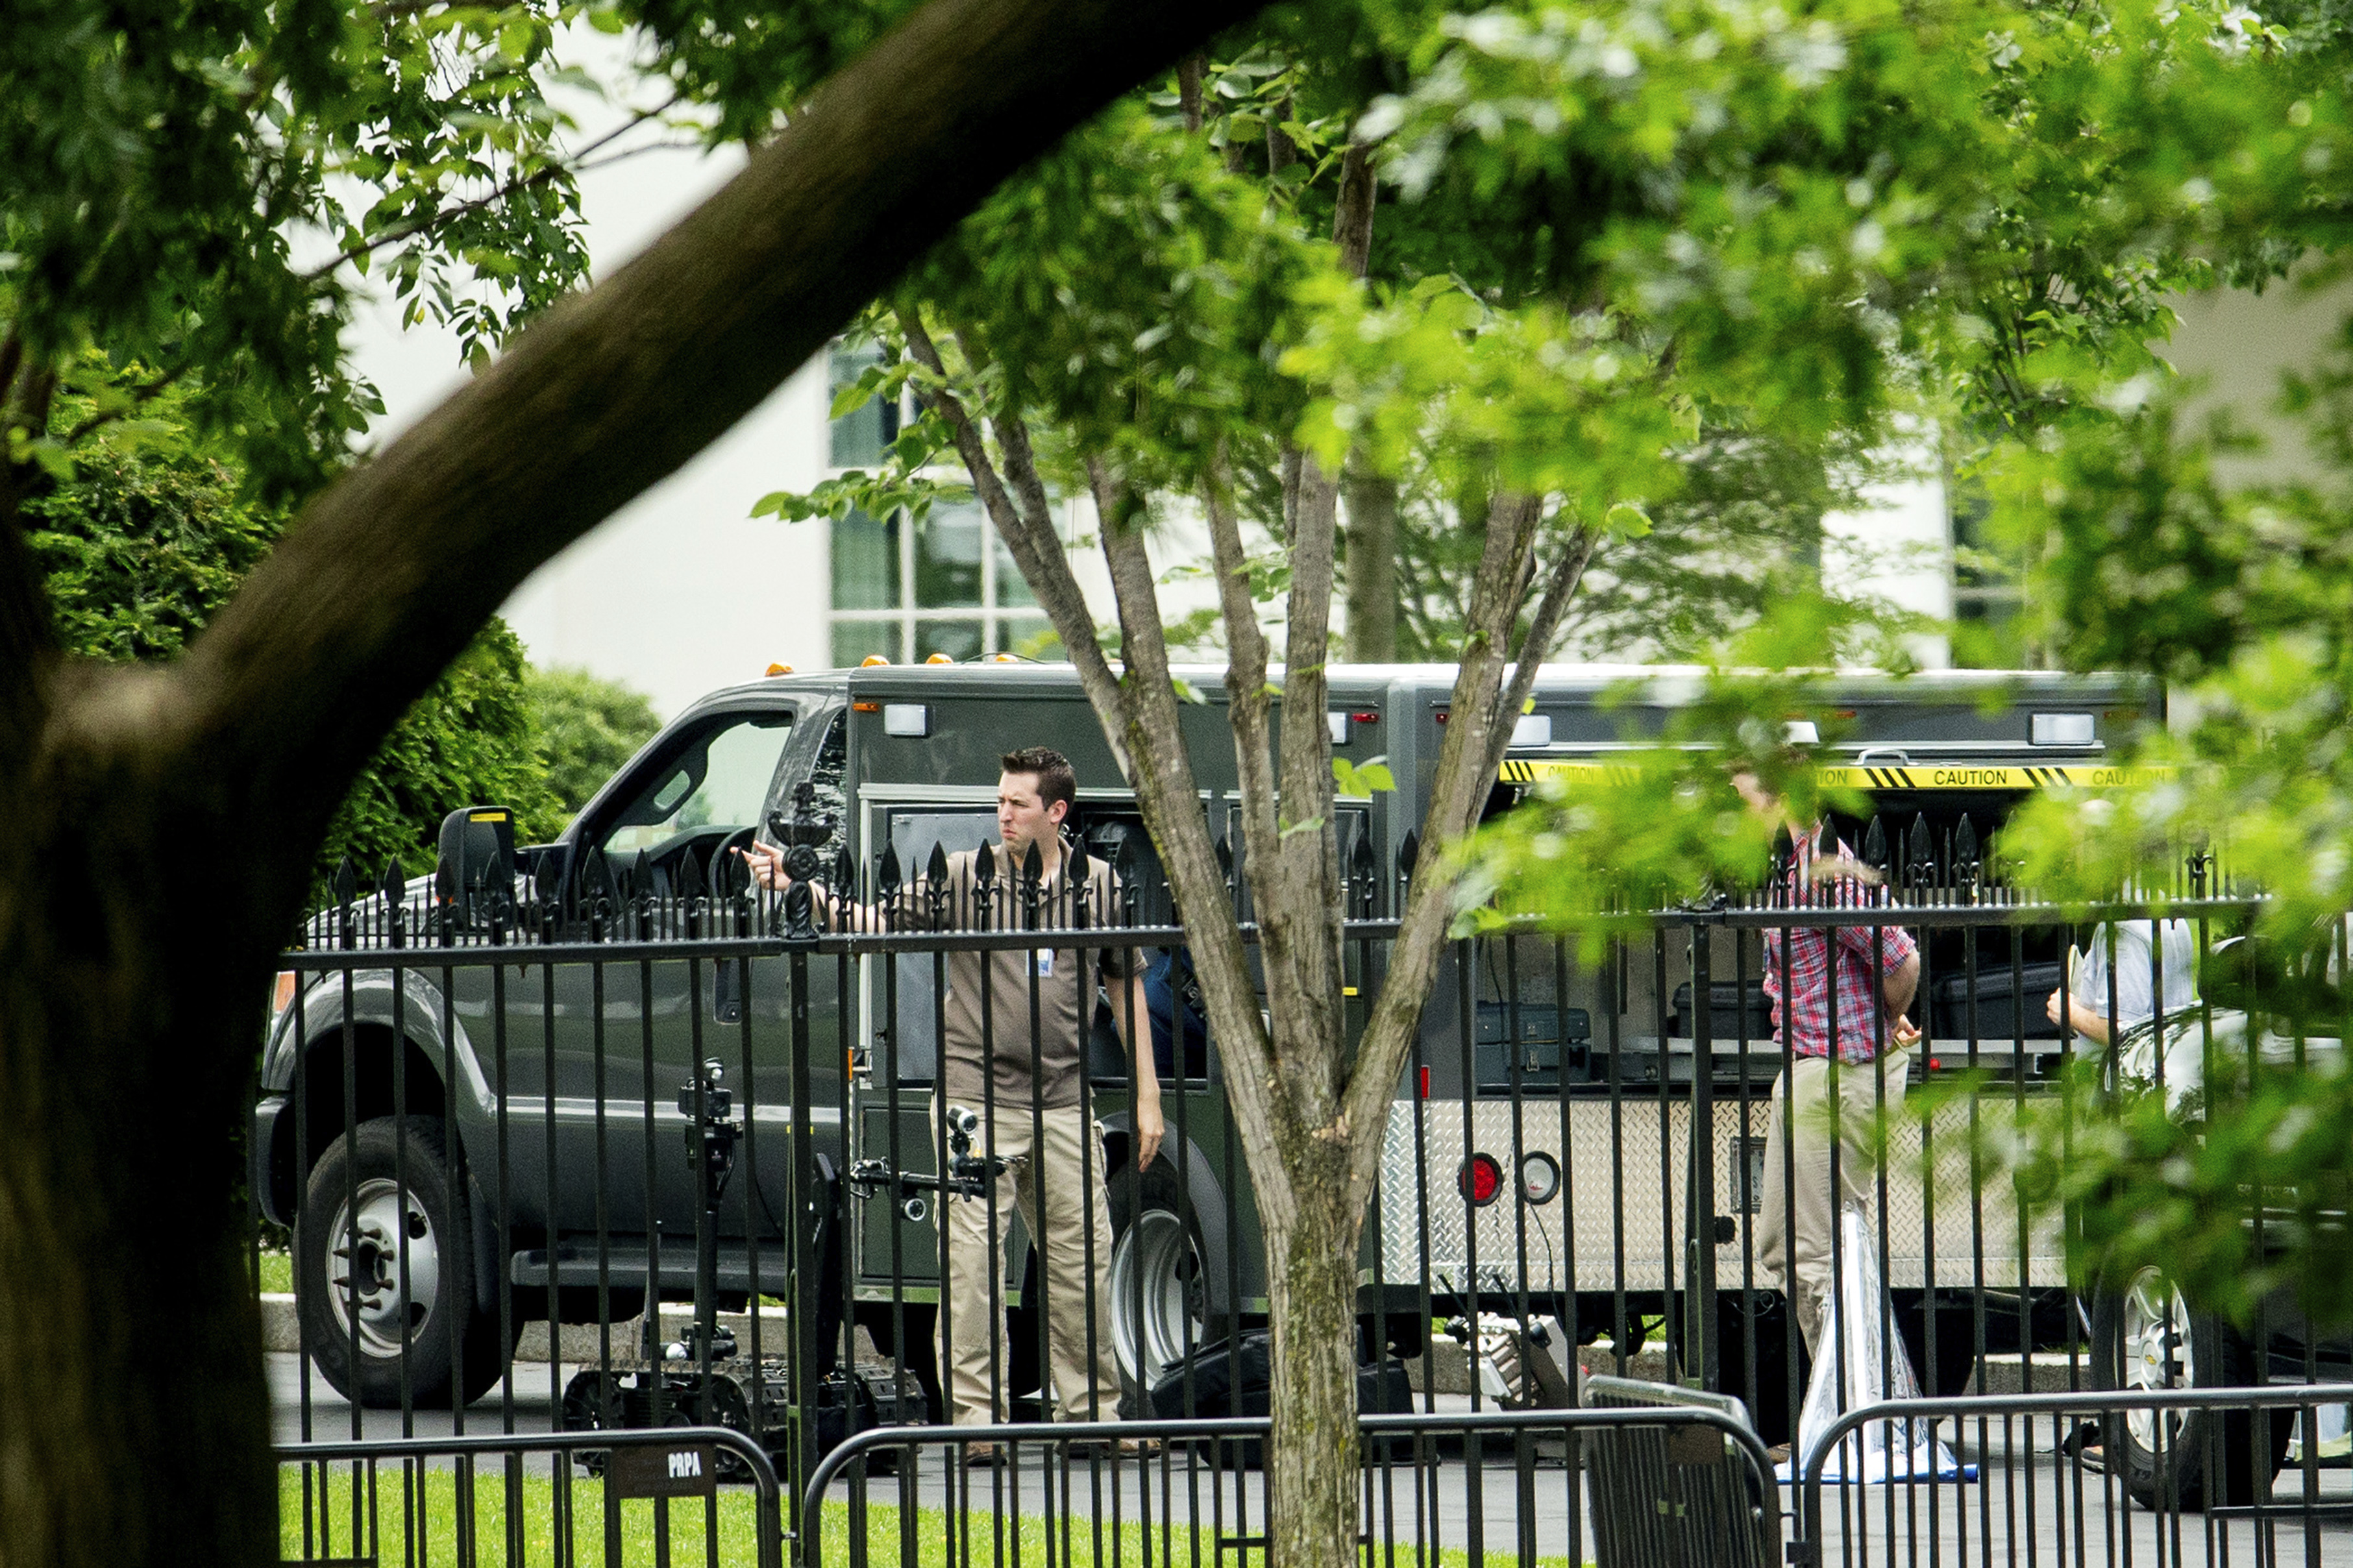 Tossed container prompts lockdown at White House (photos)